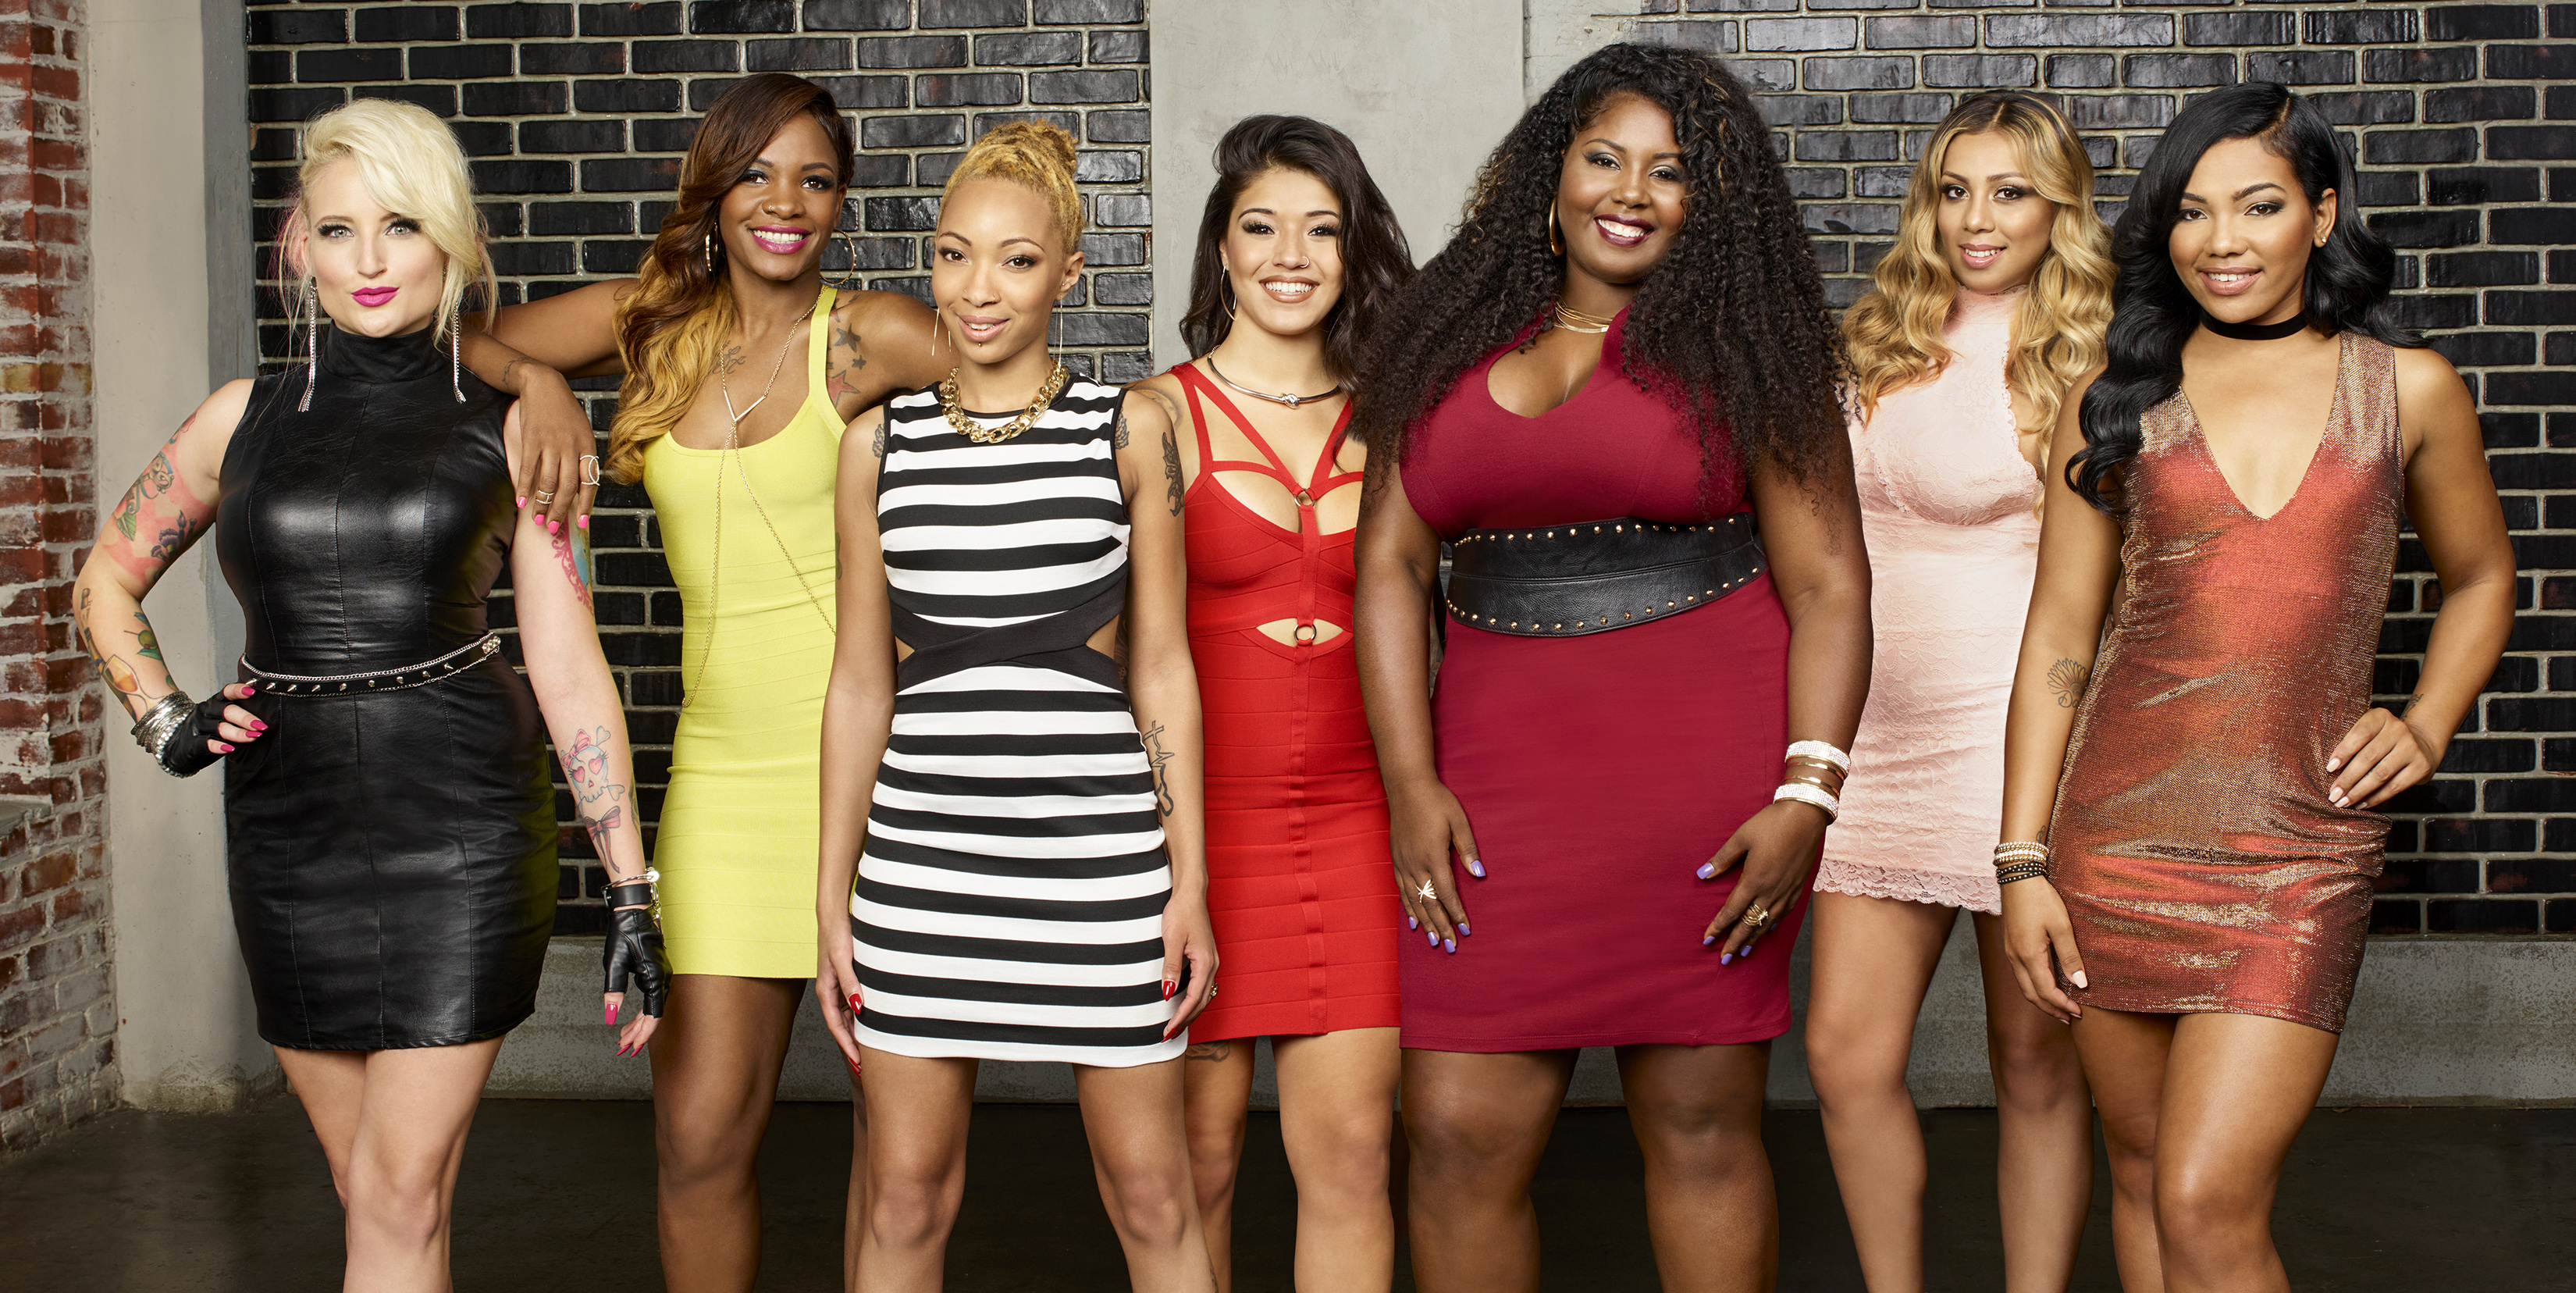 'Bad Girls Club: East Meets West' se estrena el 14 de febrero, ¡mira el tráiler!